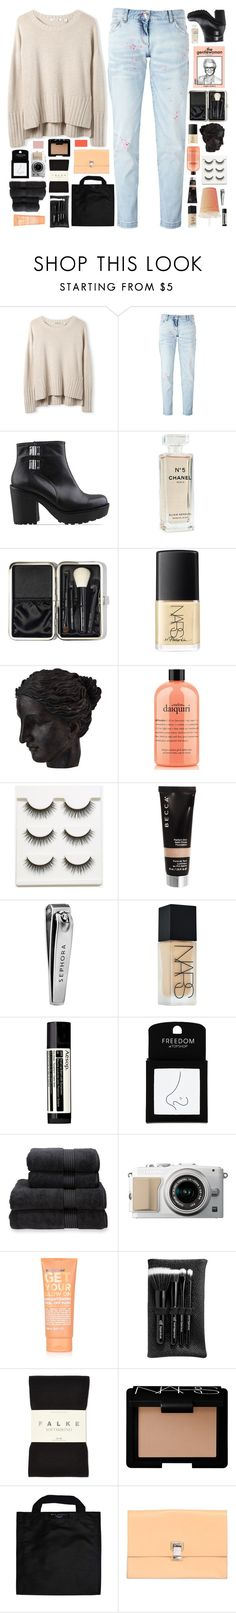 """☾ your heart of gold turned platinum"" by thundxrstorms ❤ liked on Polyvore featuring Philipp Plein, Vagabond, Chanel, Bobbi Brown Cosmetics, NARS Cosmetics, Ren-Wil, philosophy, Becca, Sephora Collection and Aesop"